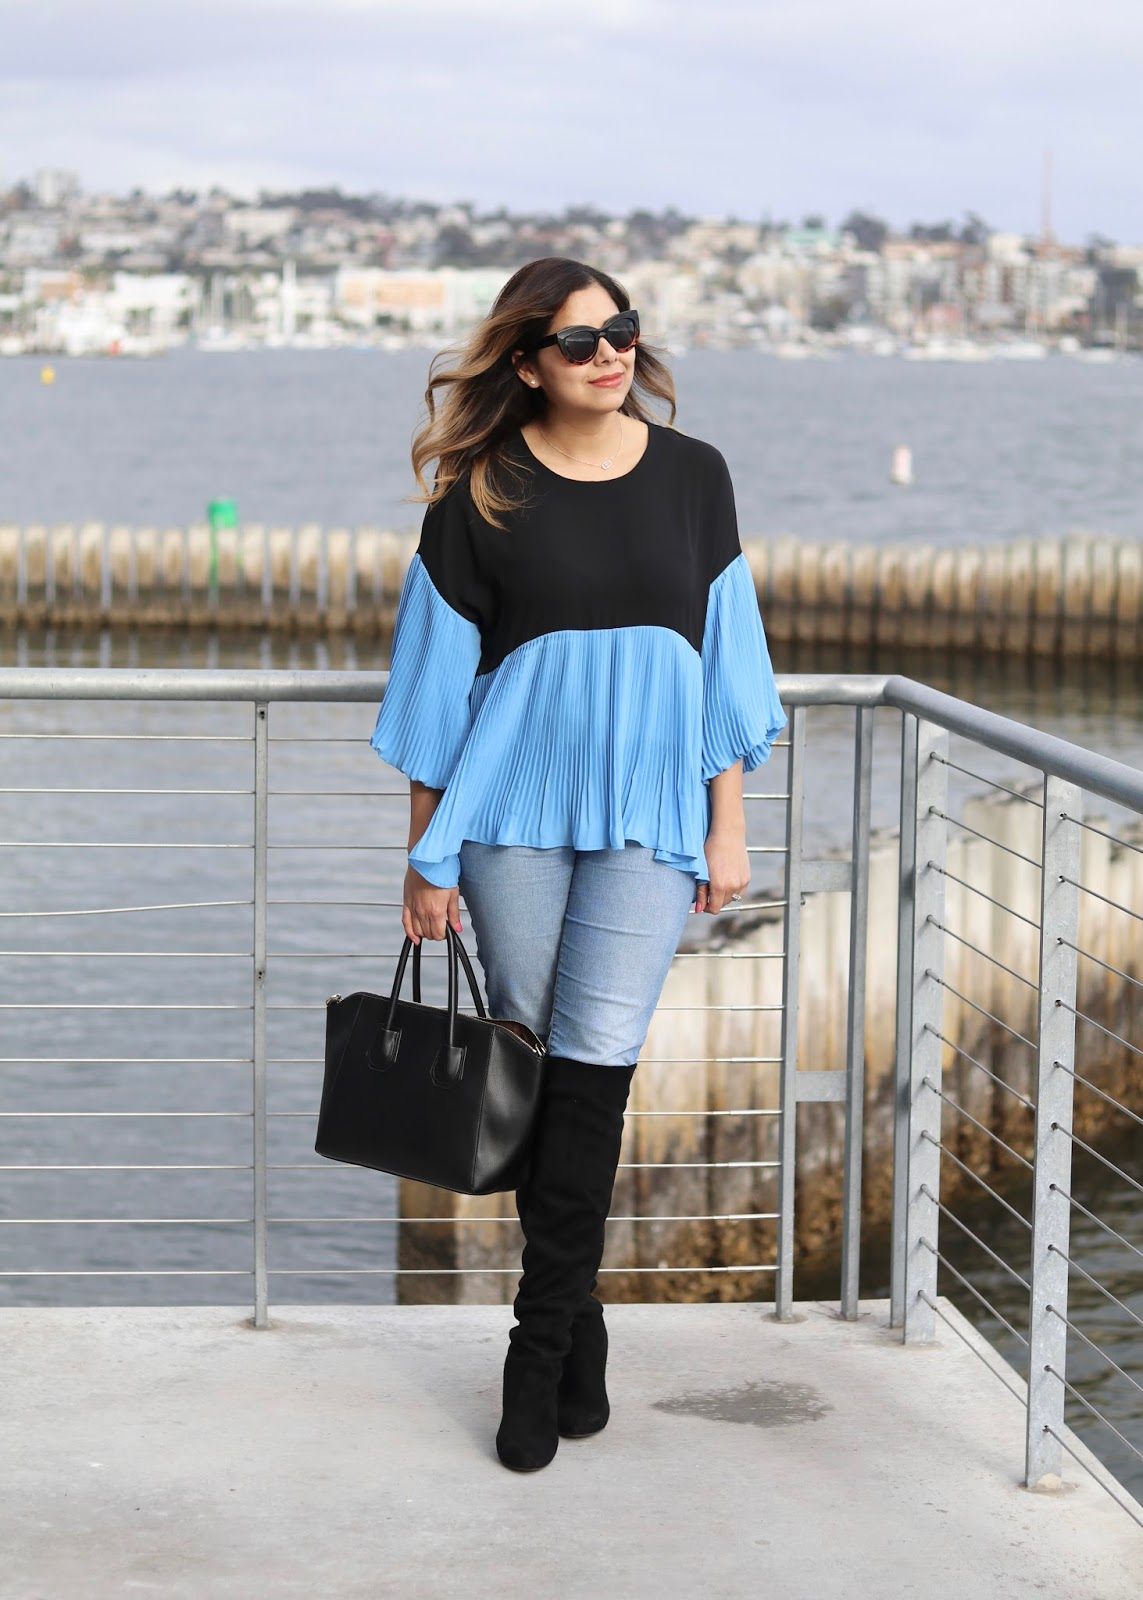 Chicwish Flowy Top, San Diego Fashion Blogger, San Diego style blogger